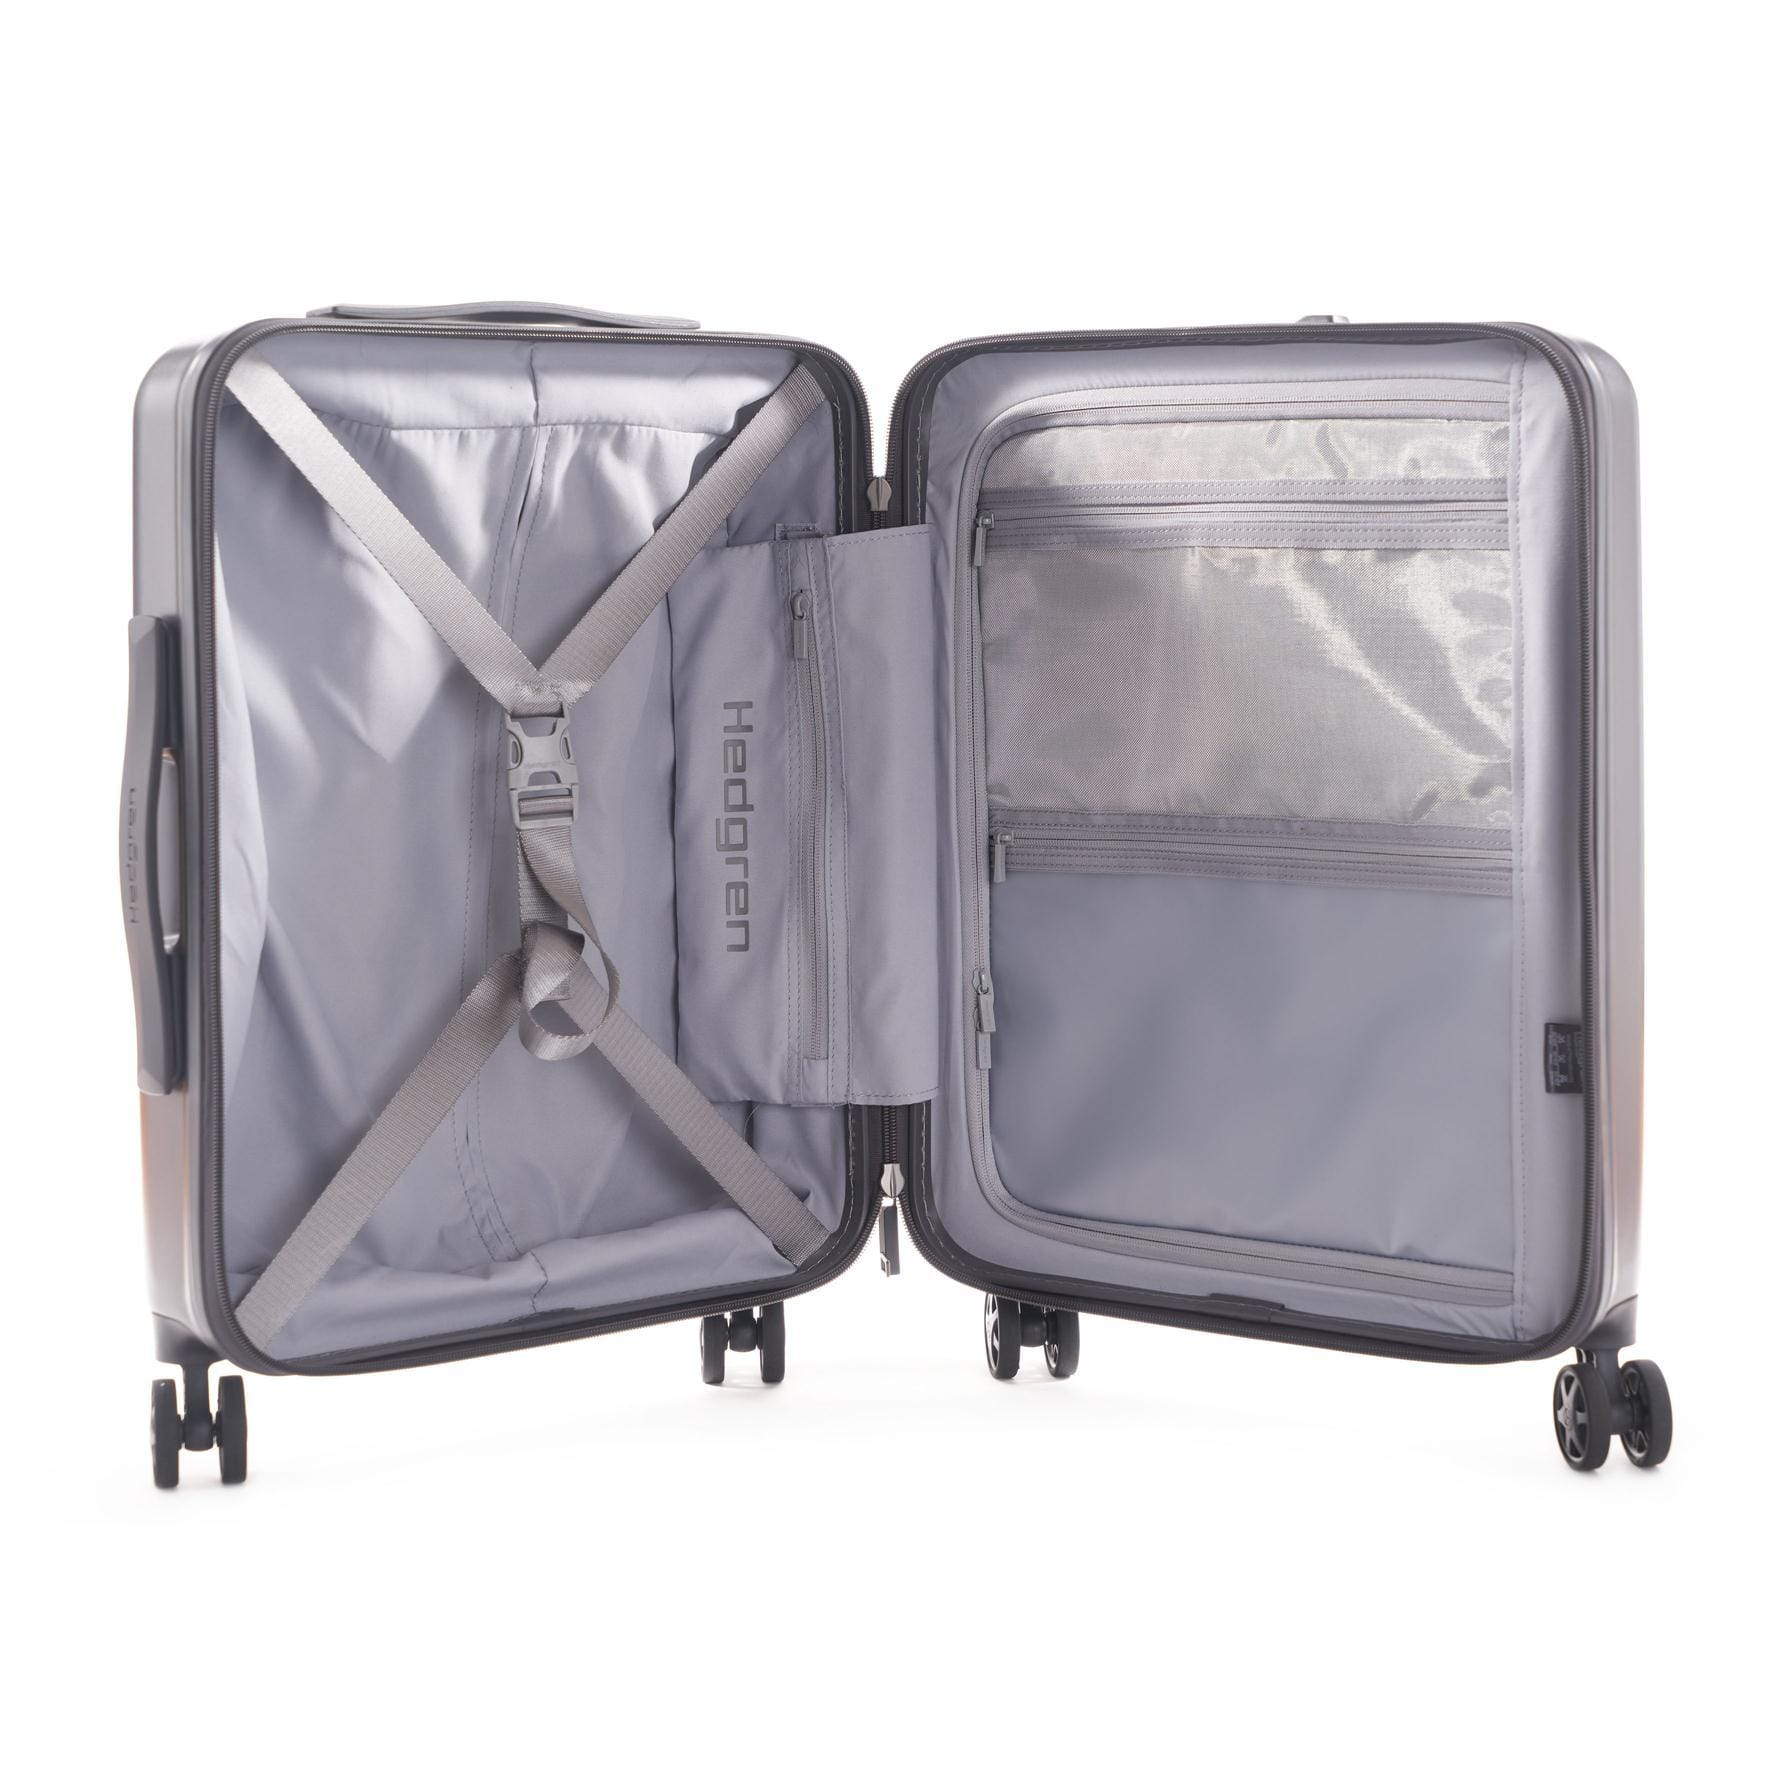 EDGE 550MM CARRY ON SPINNER TROLLEY